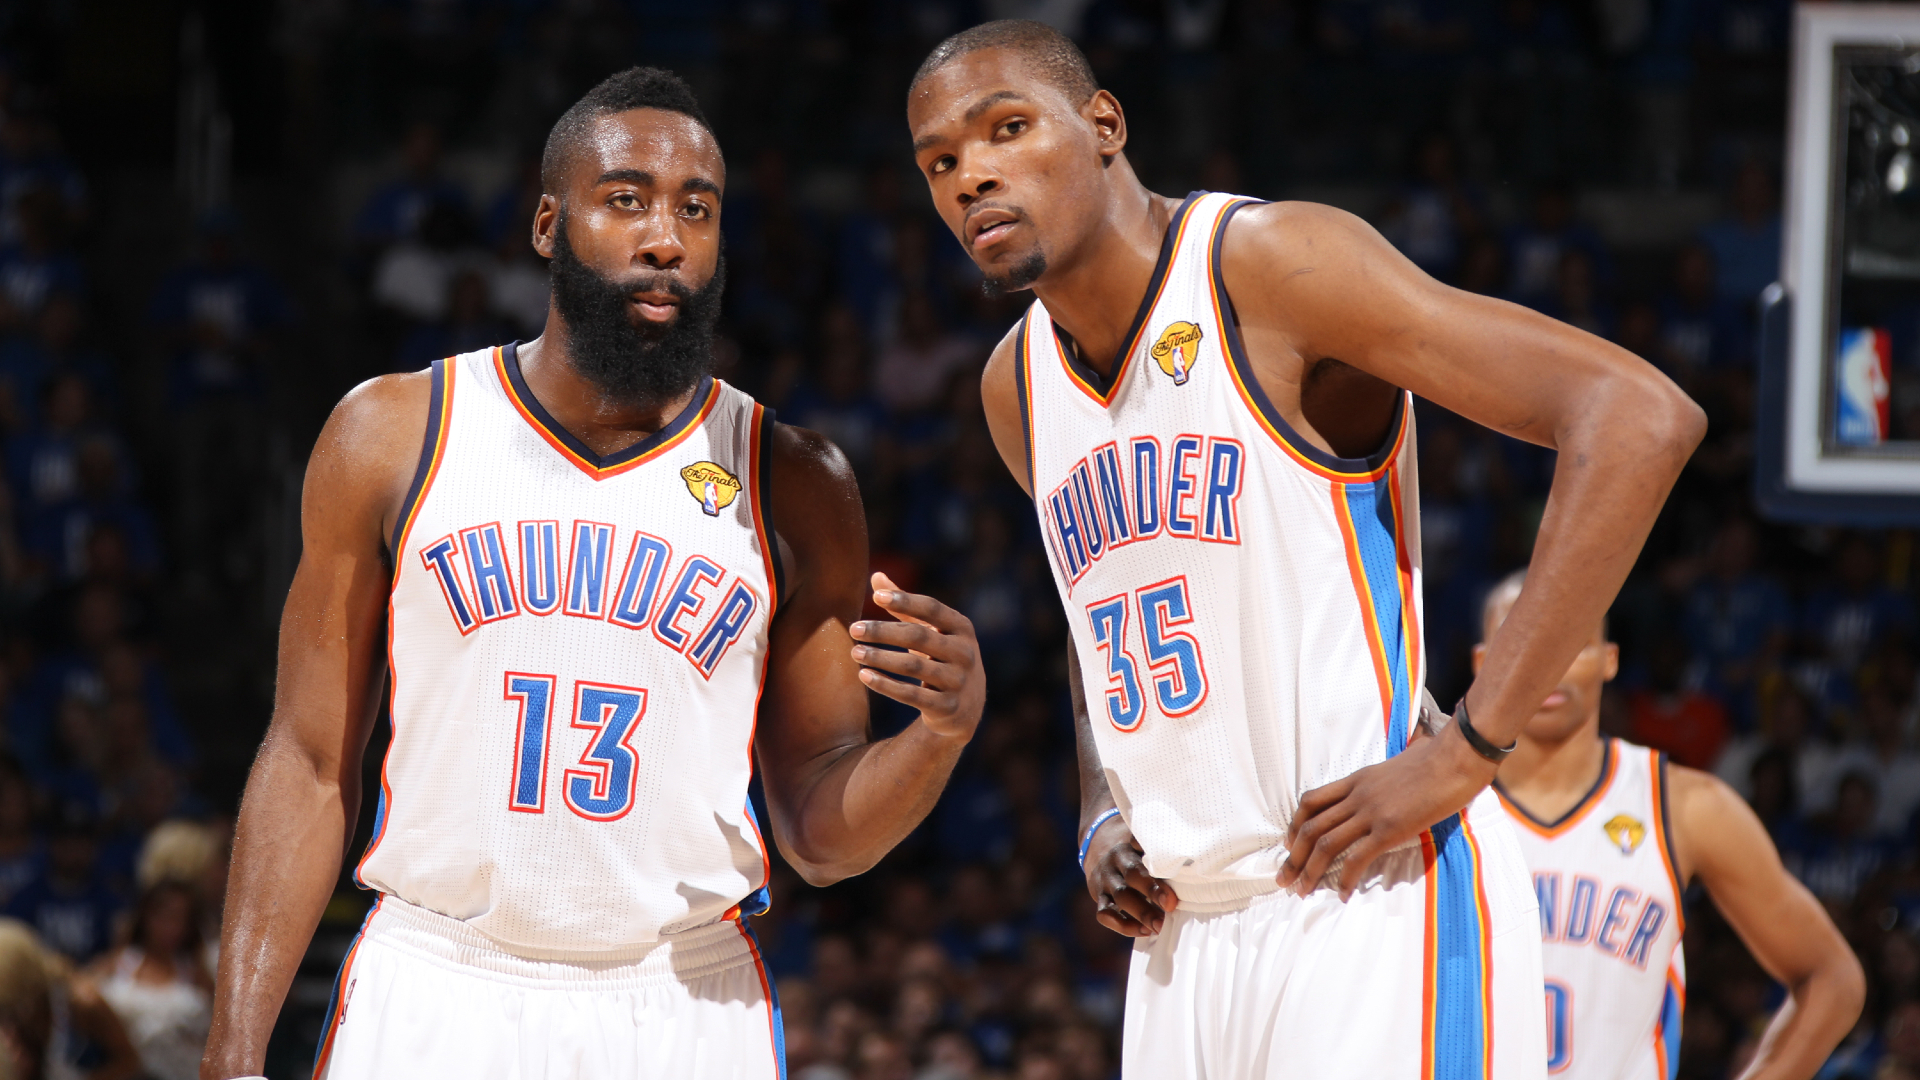 It was fun – Durant discusses playing alongside Harden ahead of expected reunion